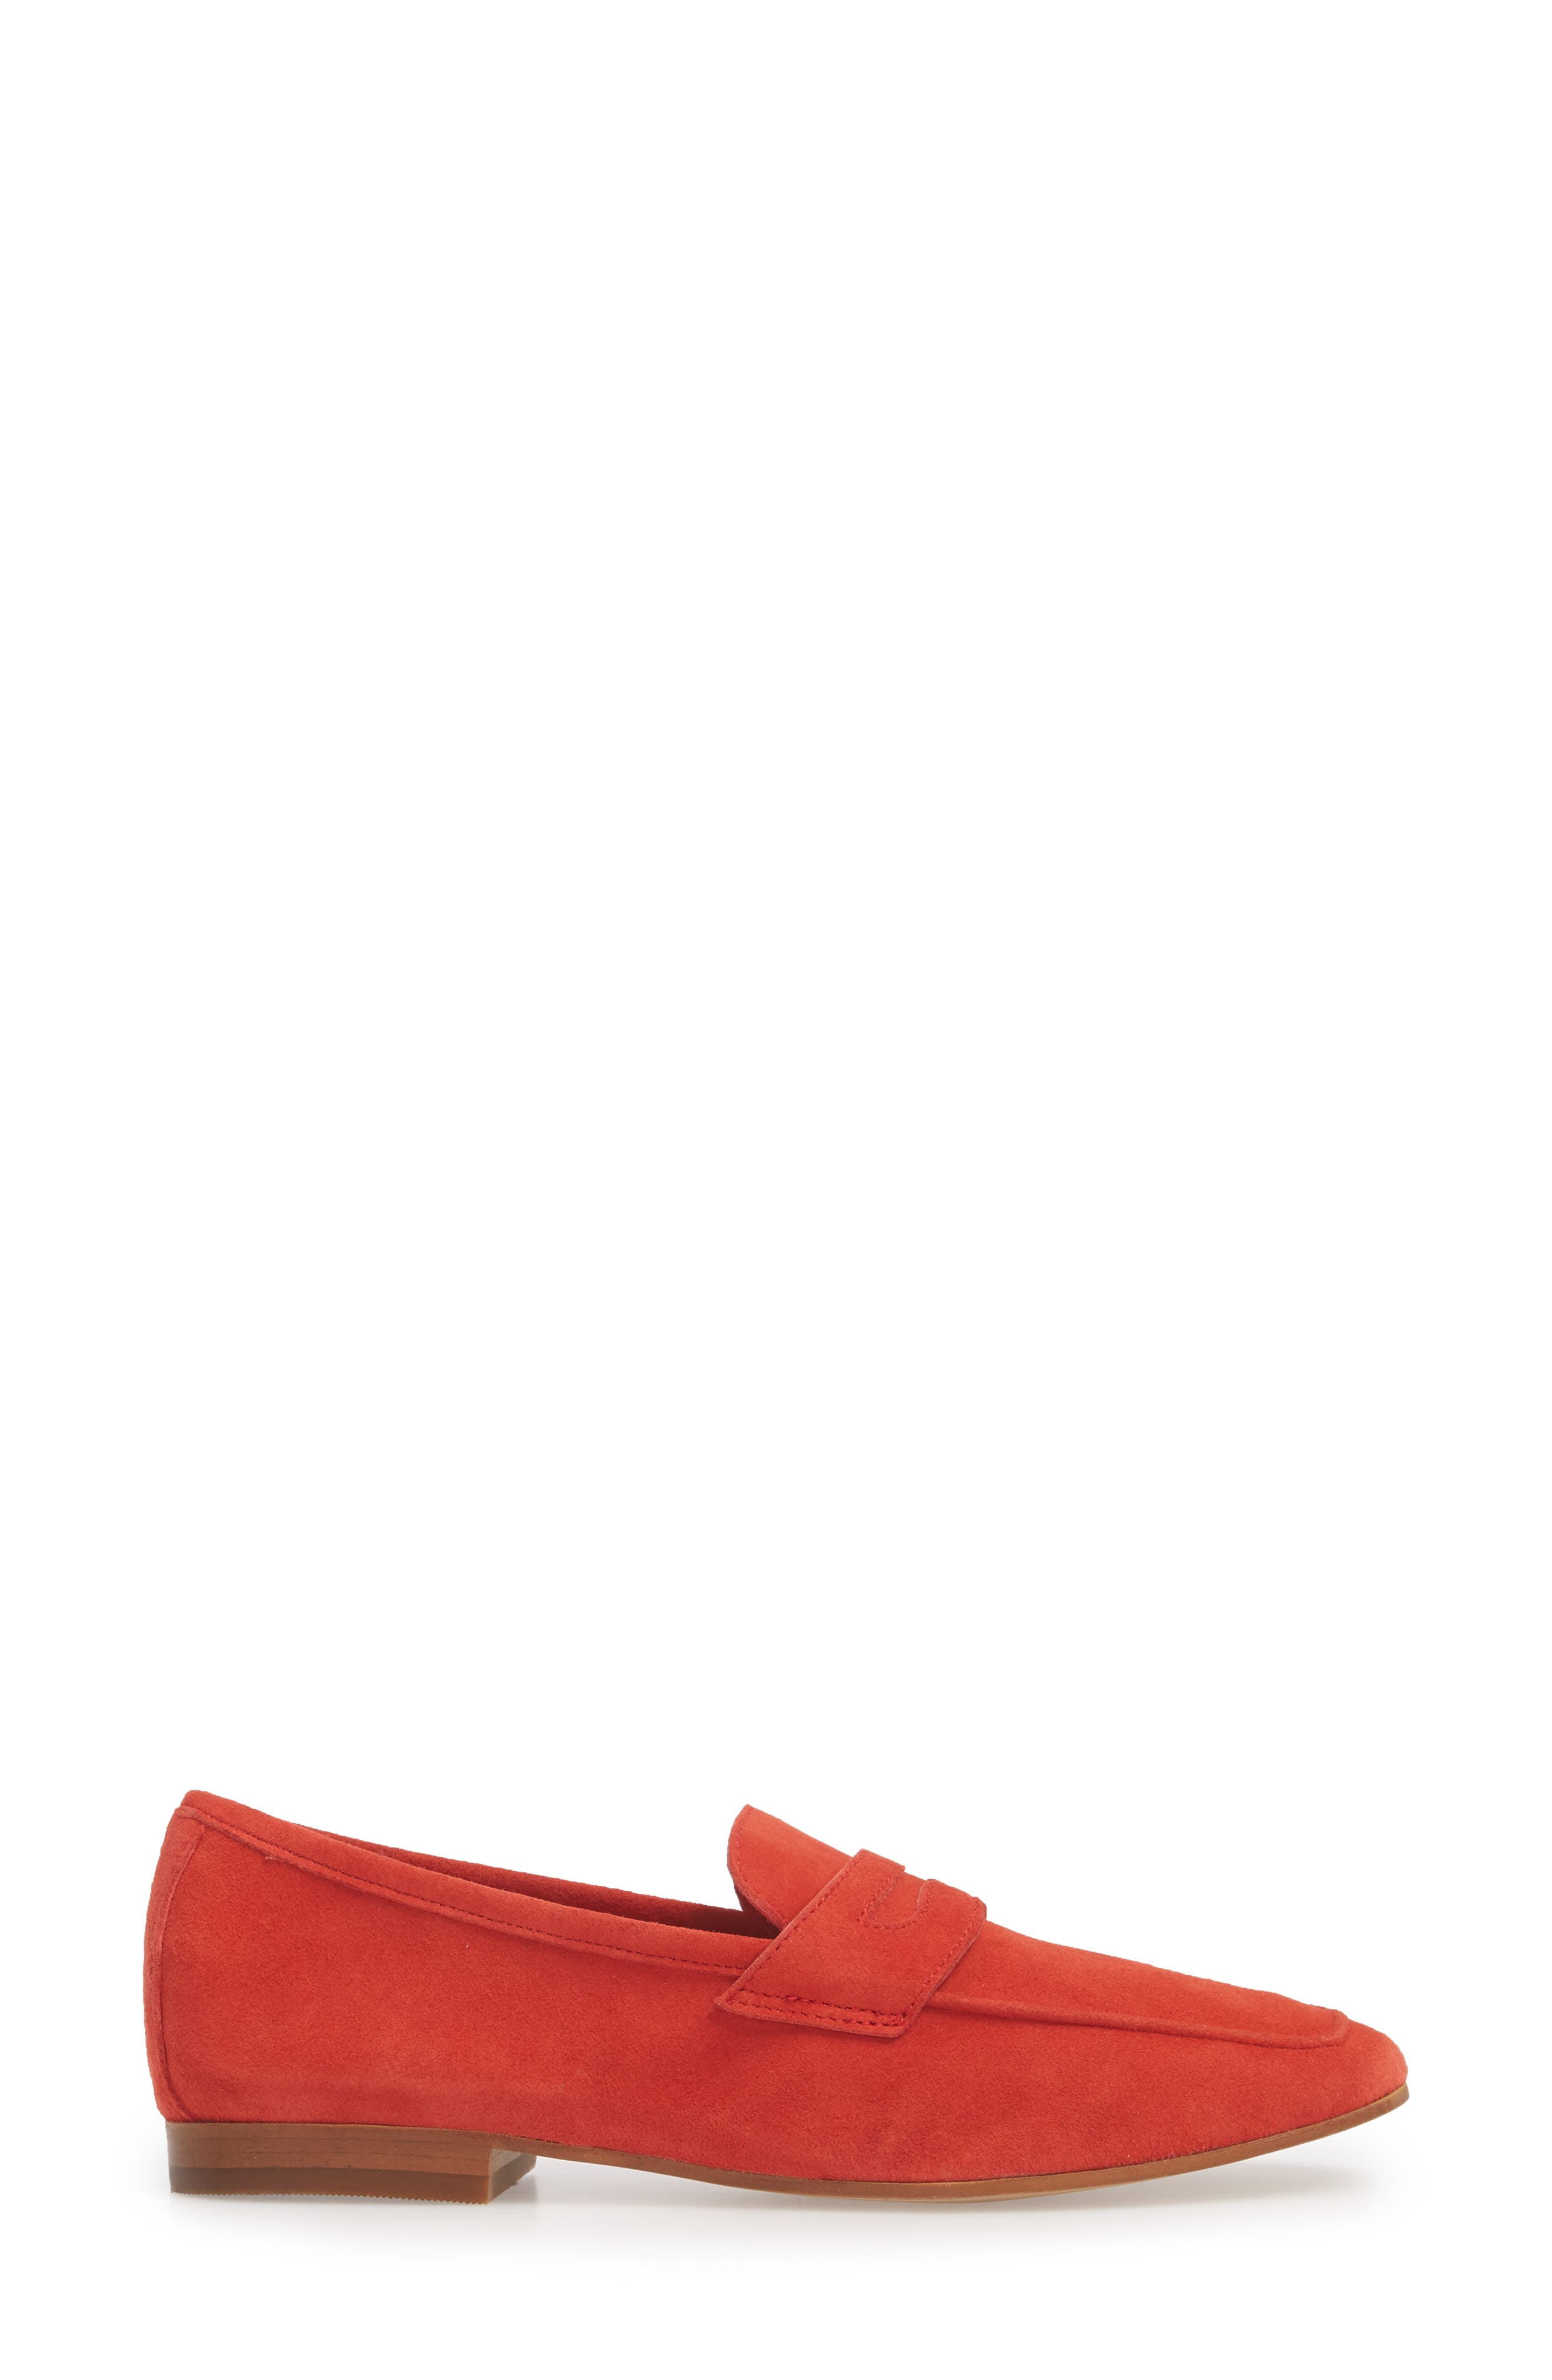 Dean Apron Toe Penny Loafer,                             Alternate thumbnail 3, color,                             Red Suede